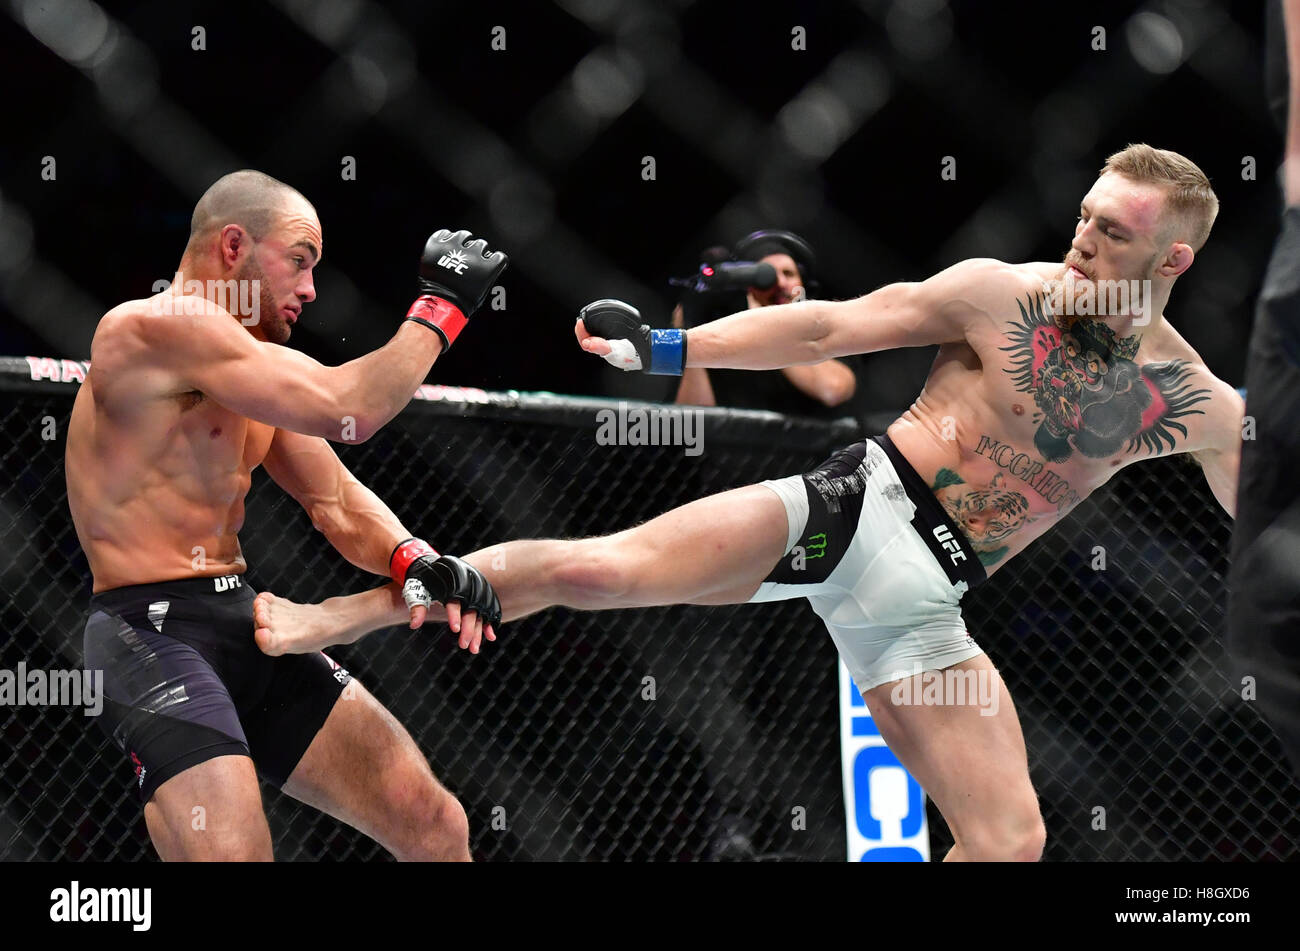 New York, USA. 12 novembre, 2016. Eddie Alvarez vs. Conor 'le fameux' McGregor durant l'UFC 205 à Photo Stock